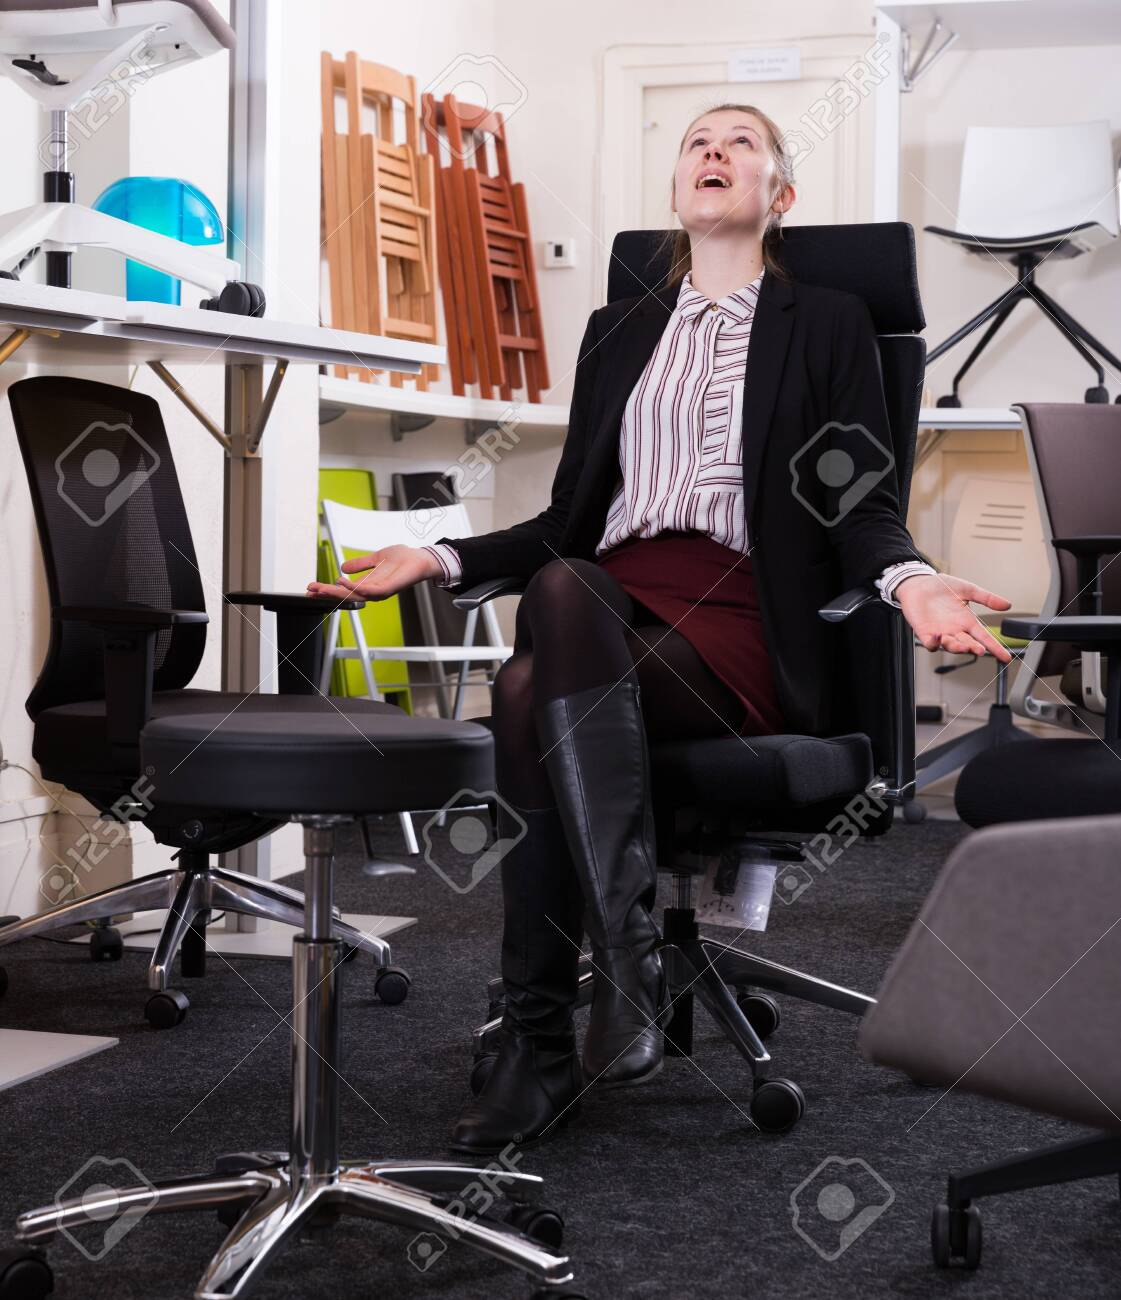 Satisfied Young Woman Sitting In Ergonomic Office Chair In Furniture Stock Photo Picture And Royalty Free Image Image 122624566